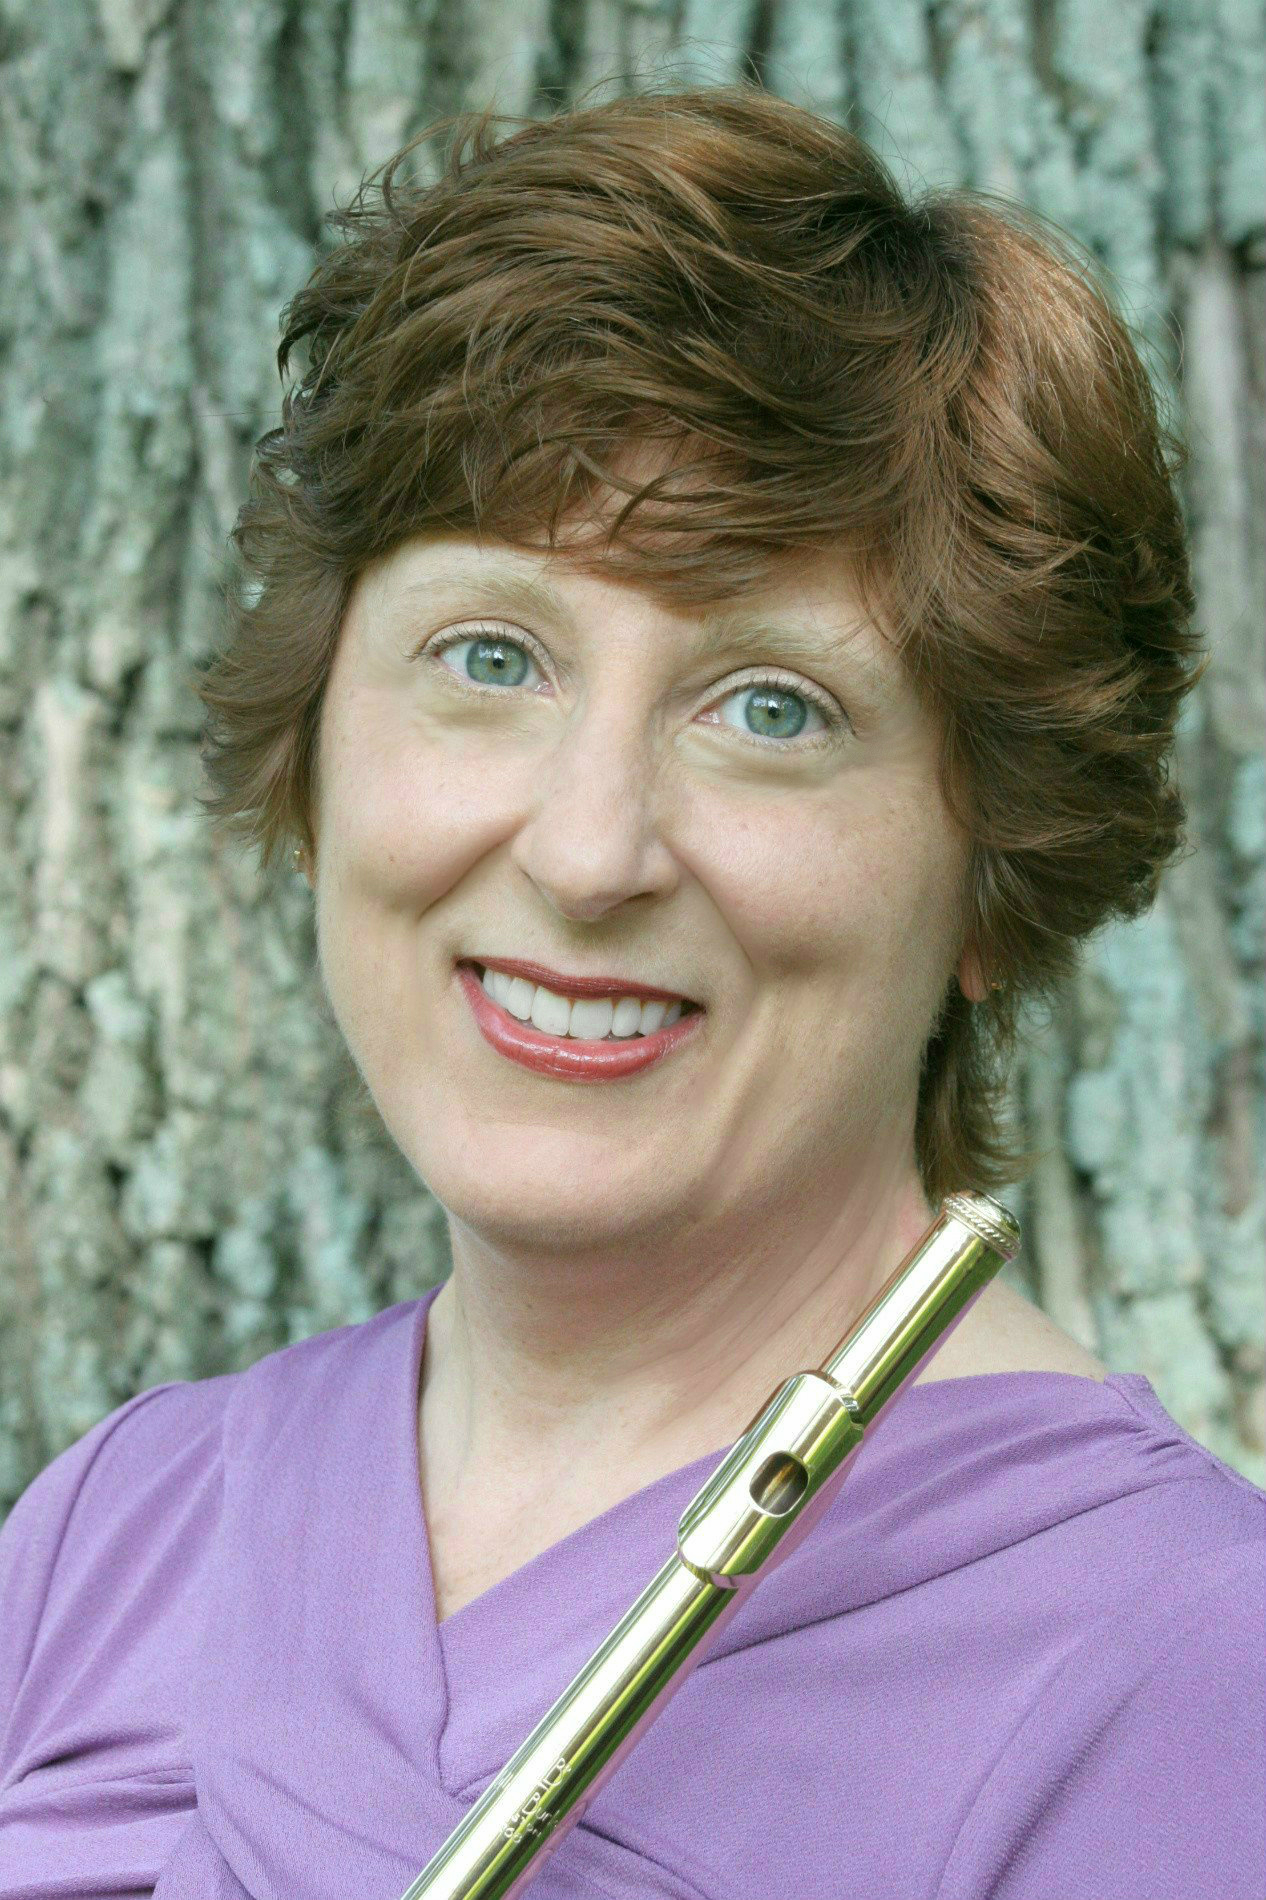 paula nelson with flute